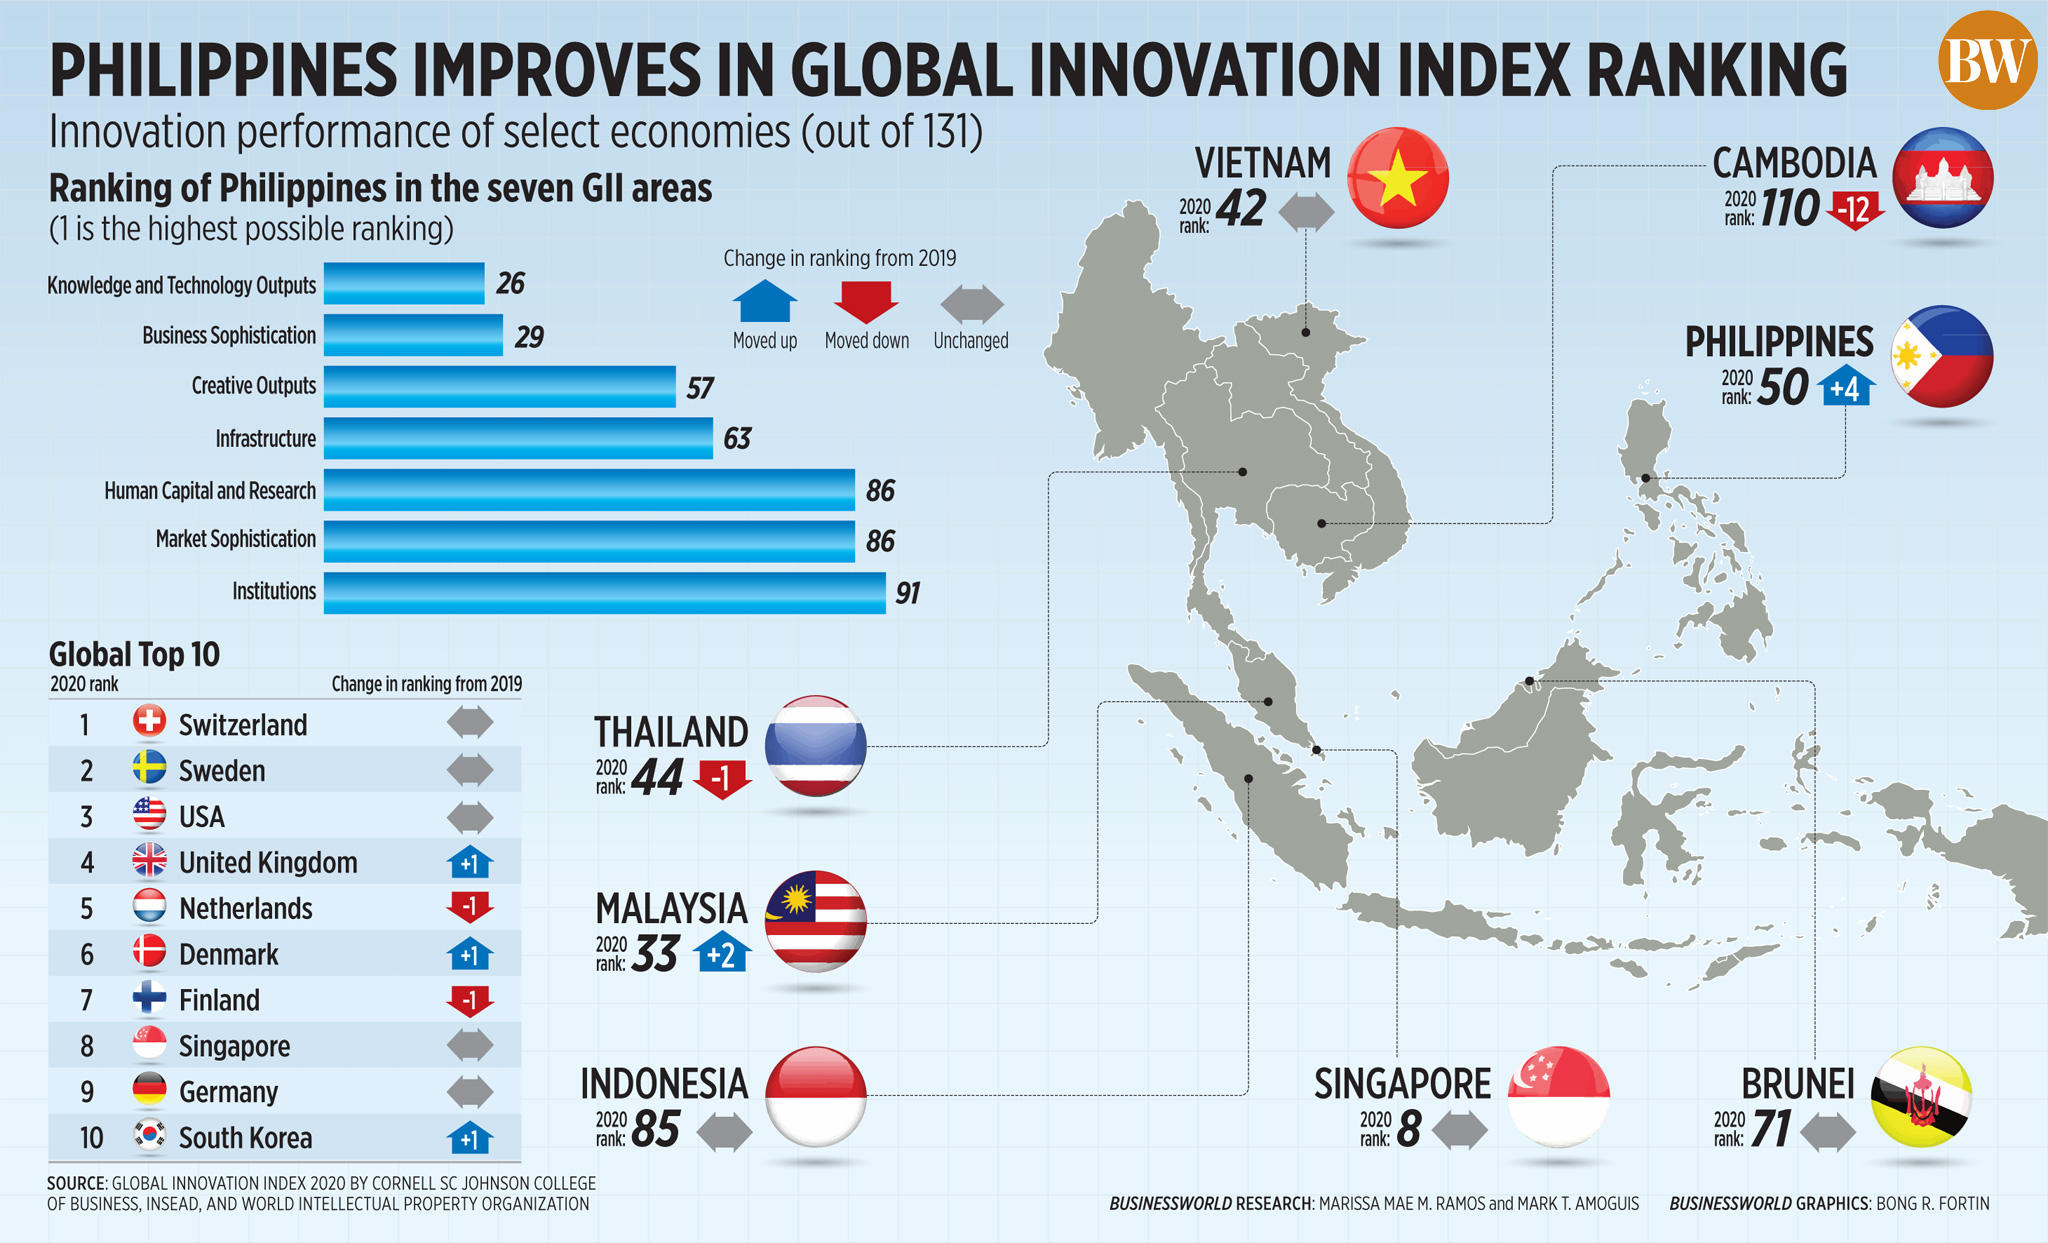 50297837187 17881bd211 o - Philippines leaps to 50th place in global innovation index